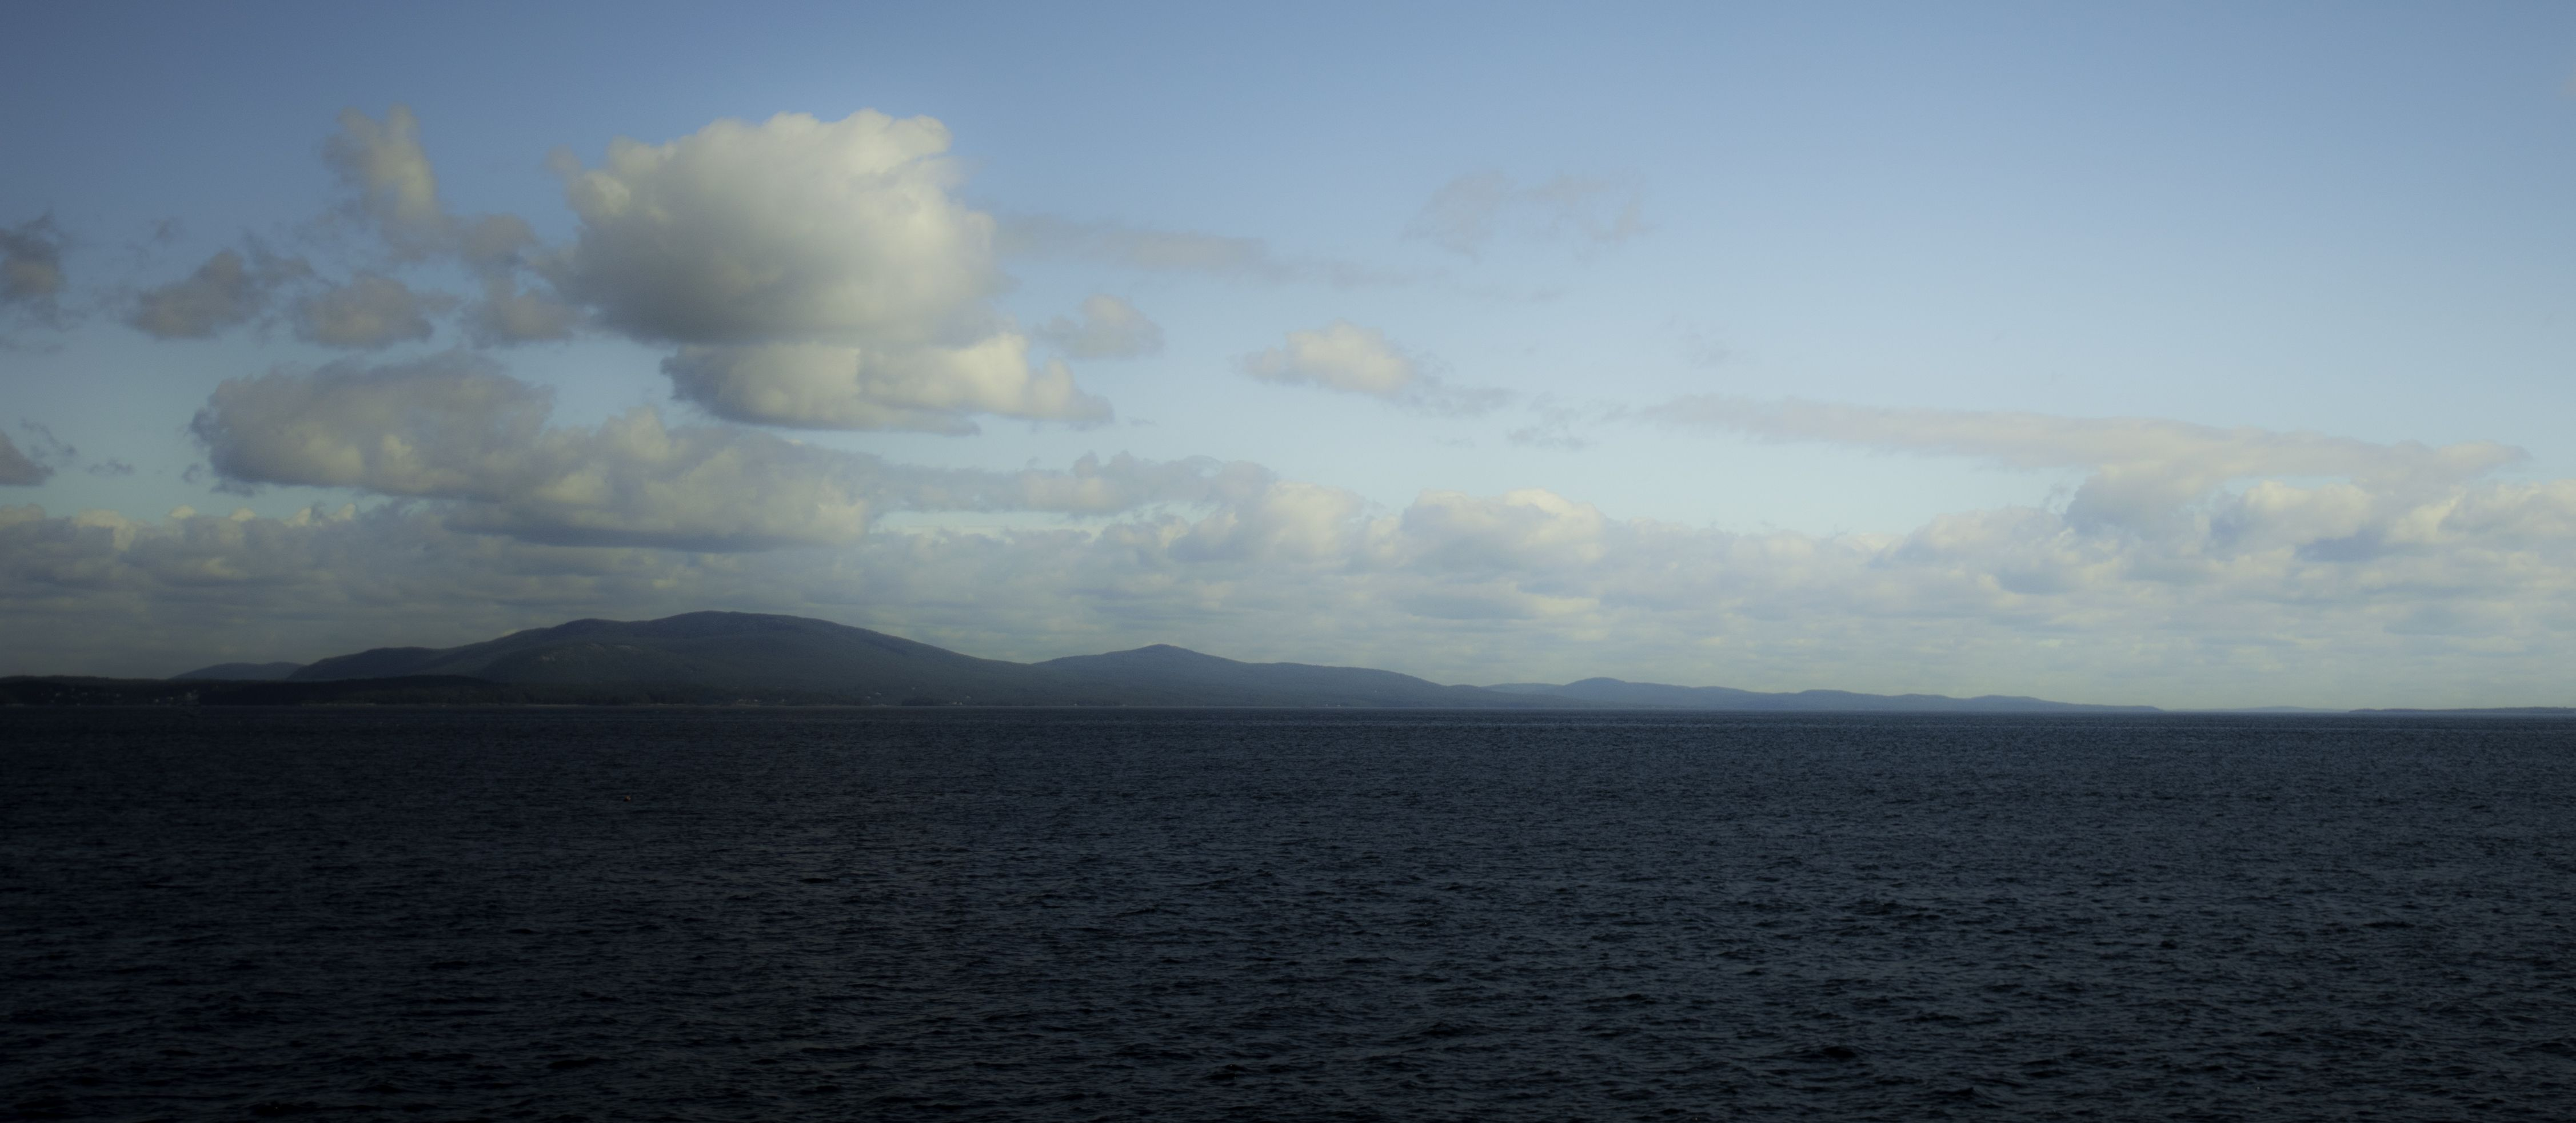 on the ferry to Vinalhaven